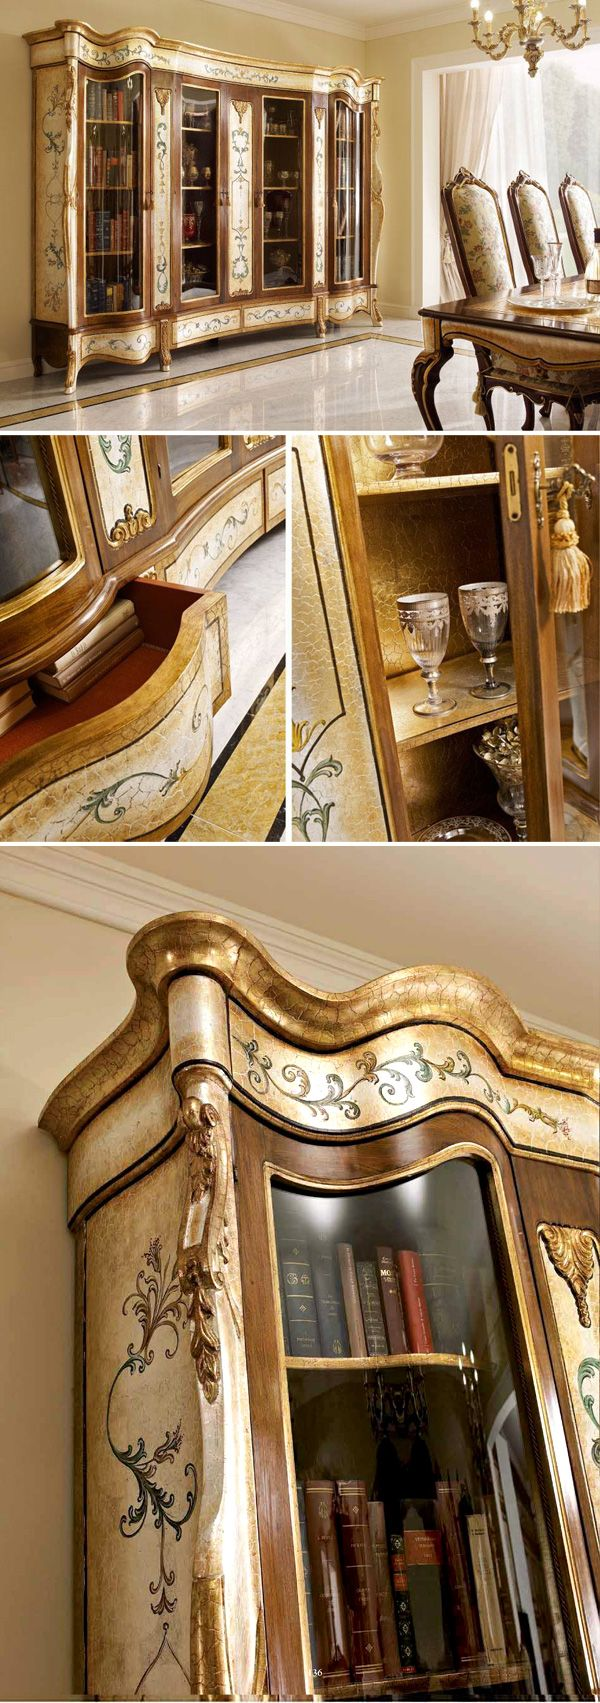 In the #study it can store precious books; in the #dining room it can host sophisticated #tableware.